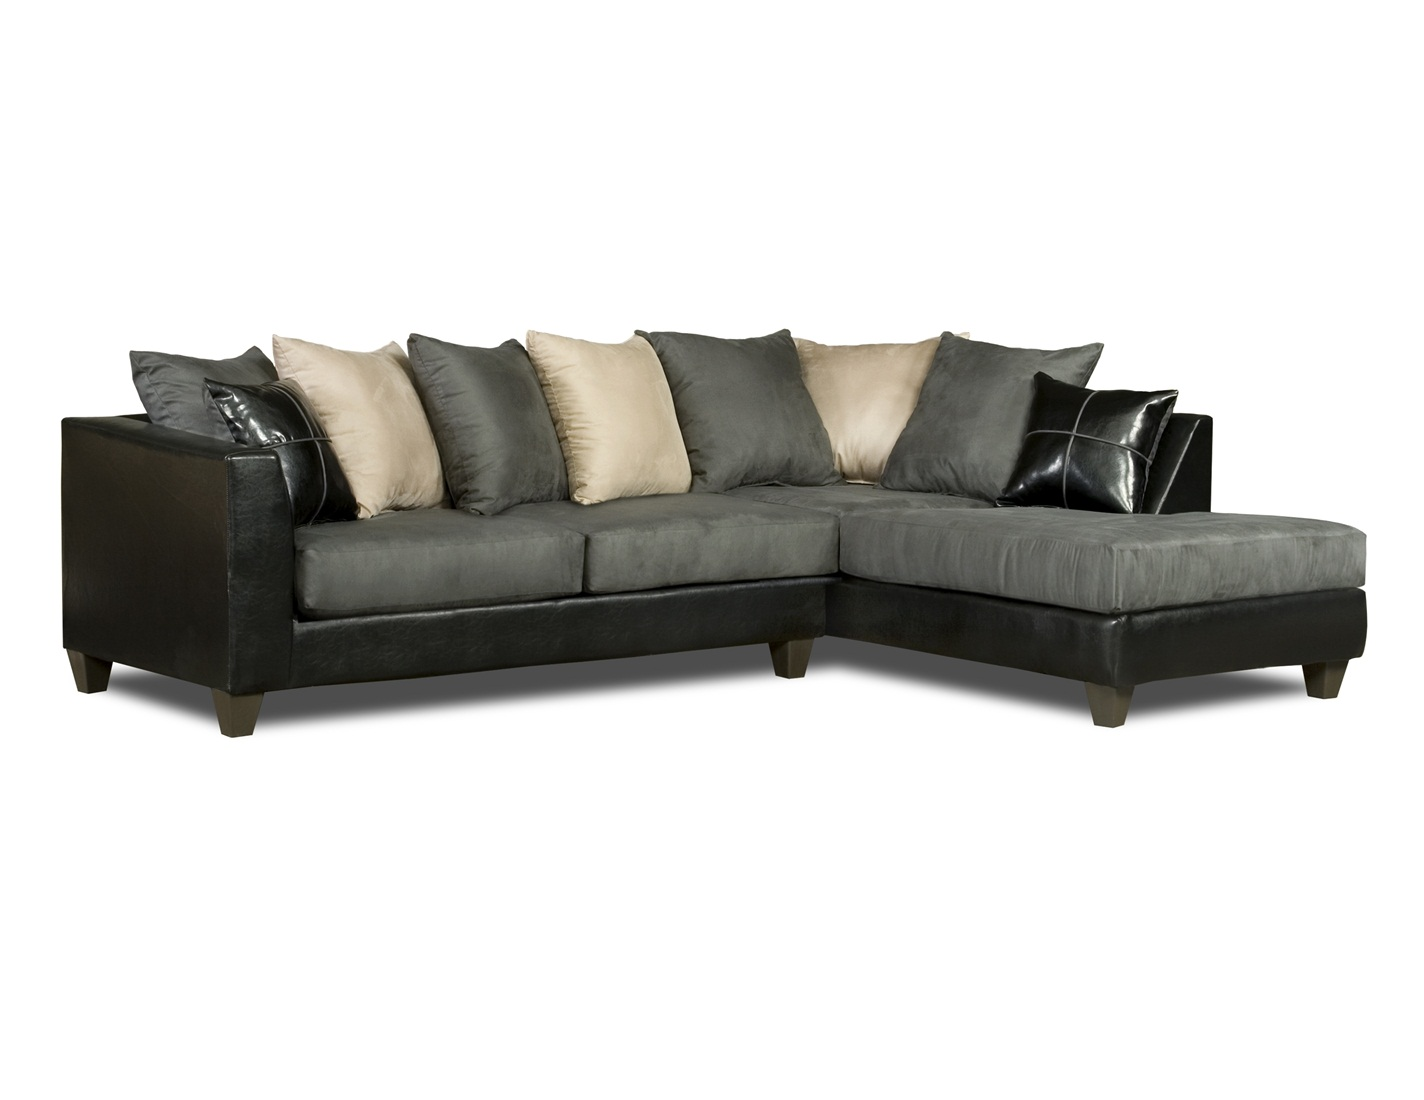 gray sofa sectional cover material online india black and white loose pillow back 4185